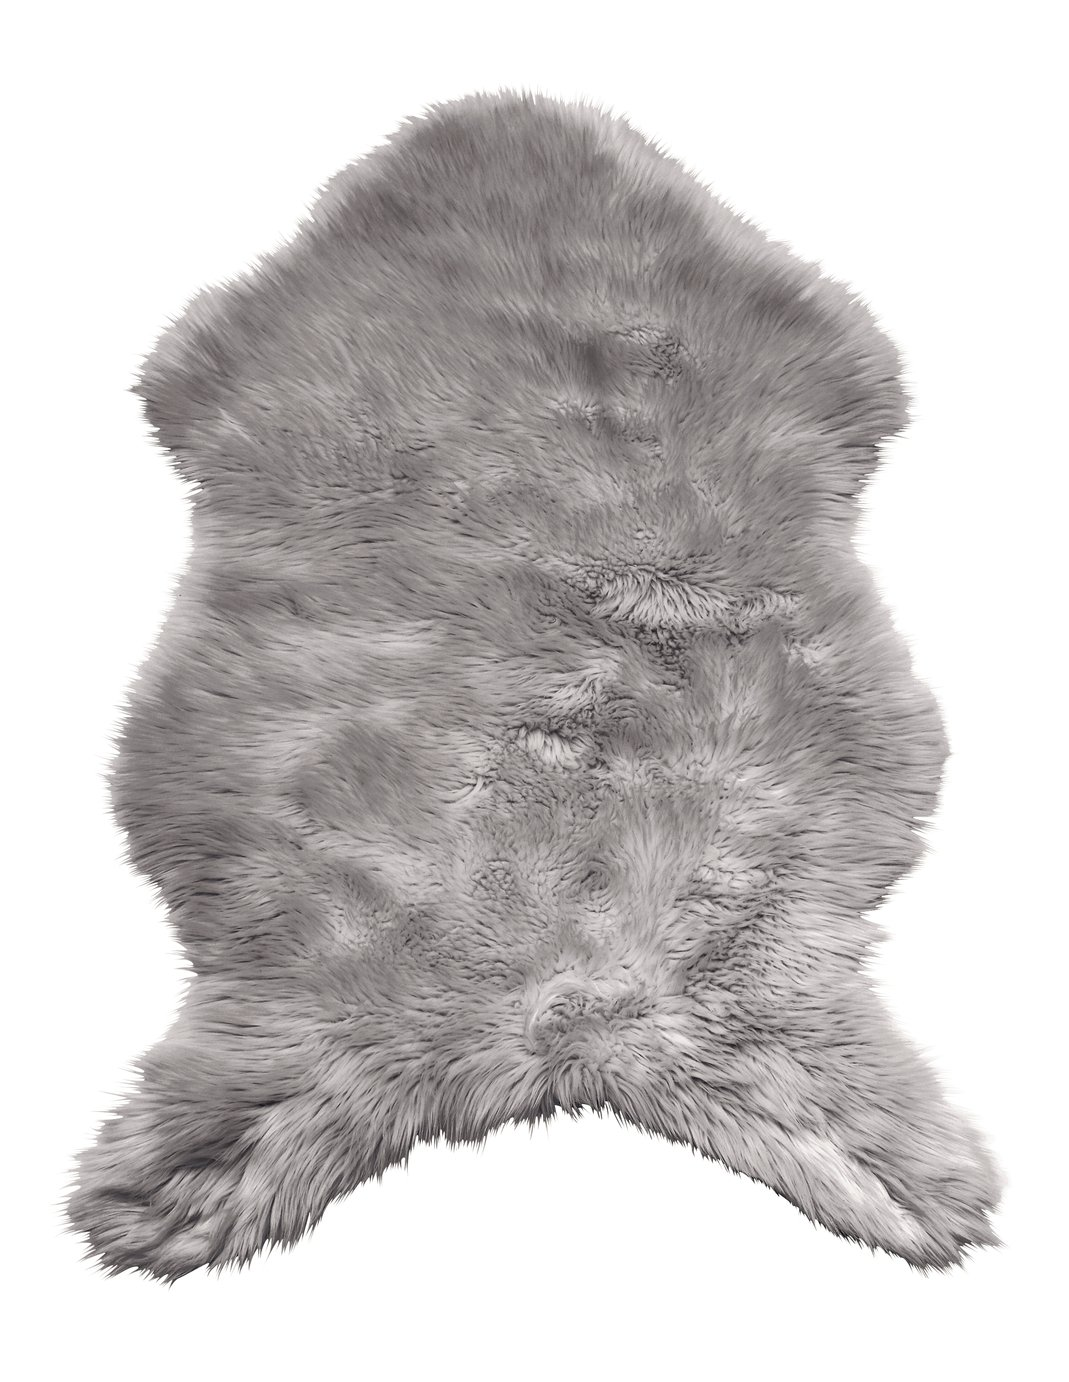 Argos Home Small Faux Sheepskin Rug - 115x70cm - Dove Grey